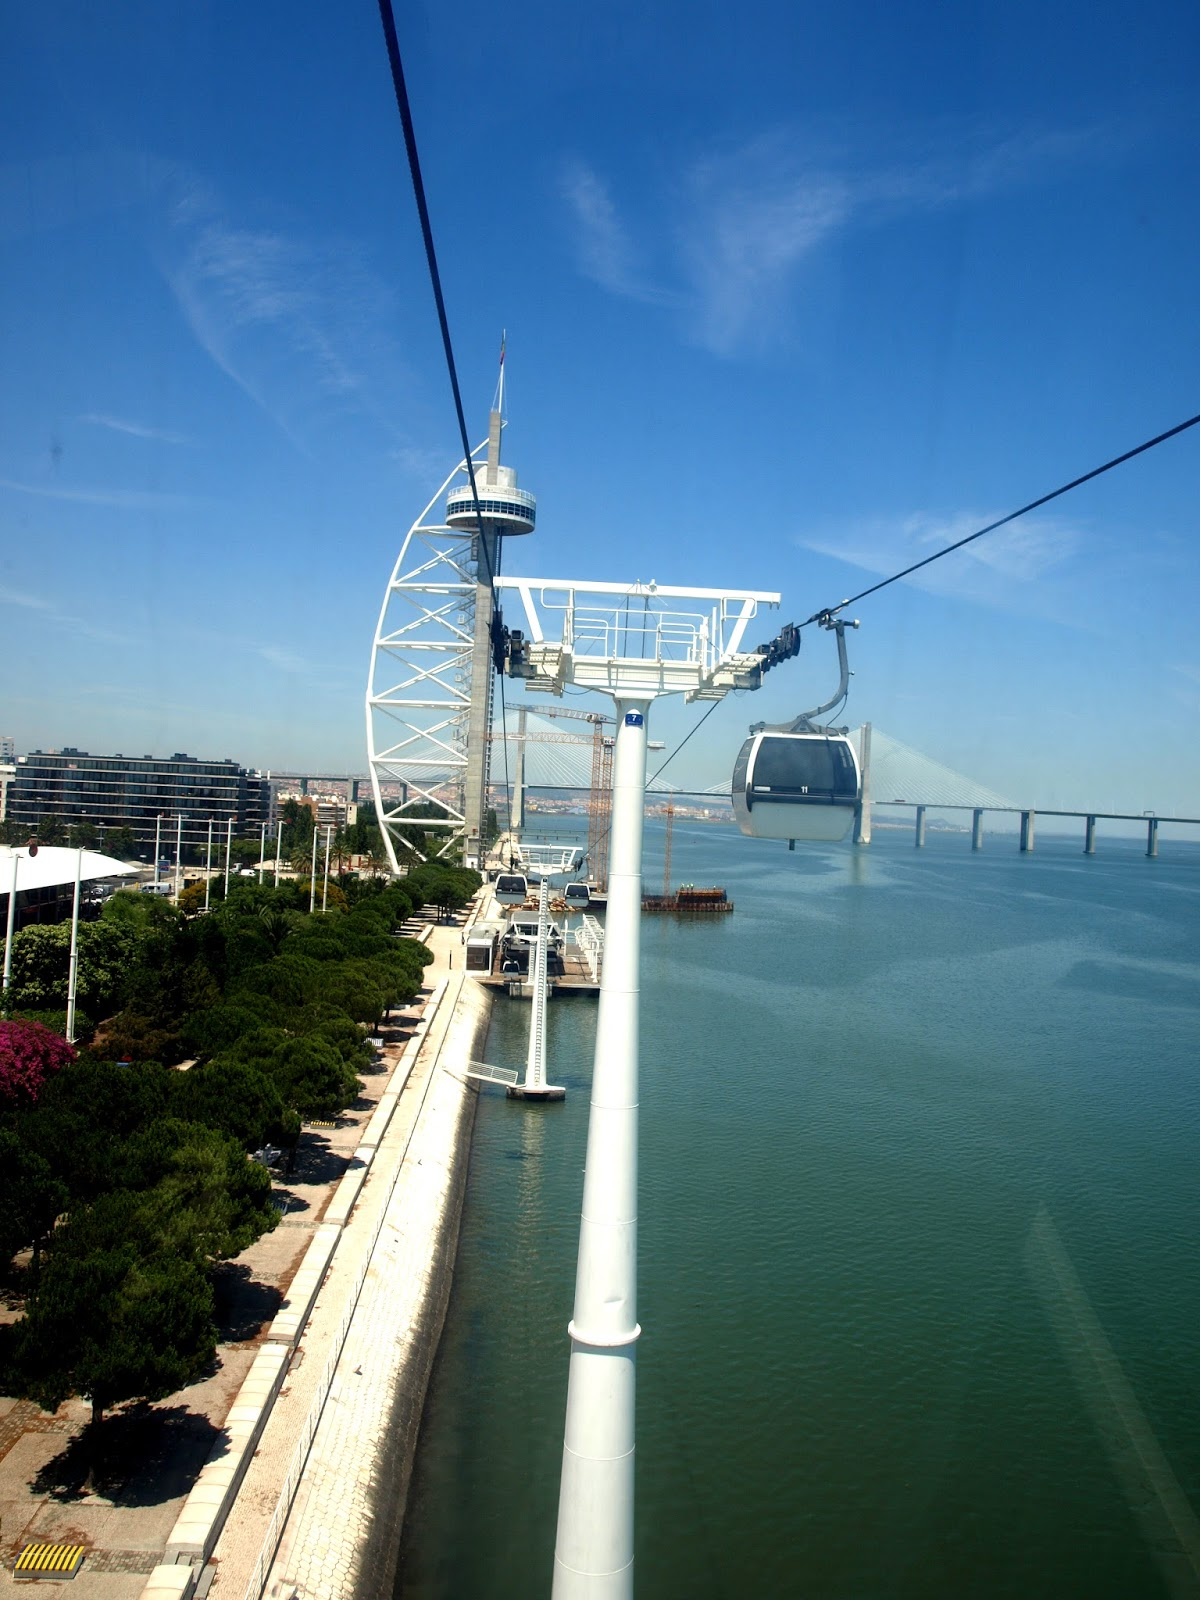 Lisbon, Lisboa, portugal, views, vasco da gama, vasco da gama bridge, vasco da gama tower, cable car, statue of christ, christ the king, travel, travel blog, top 10 lisbon, to do in lisbon, things to do, scrapbook, travel blog, travel tips, the roaming renegades, paul short, nicola hilditch-short, chriso Rei, almada, 25th April bridge, 25 de Abril Bridge, Estradio da Luz, Stadium of Light, Benfica, Santa Justa Elevator, St George's castle, Sao Jorge castle, Miradouros, São Pedro de Alcantara: Elevador da Glória or walk up from Chiado. Portas do Sol: Walk up from Baixa or tram 28. Miradouro da Graça: Walk up from Alfama or tram 28. Miradouro de Santa Luzia:, Alfama, Arco da Rua Augusta, Baixa, Cascais